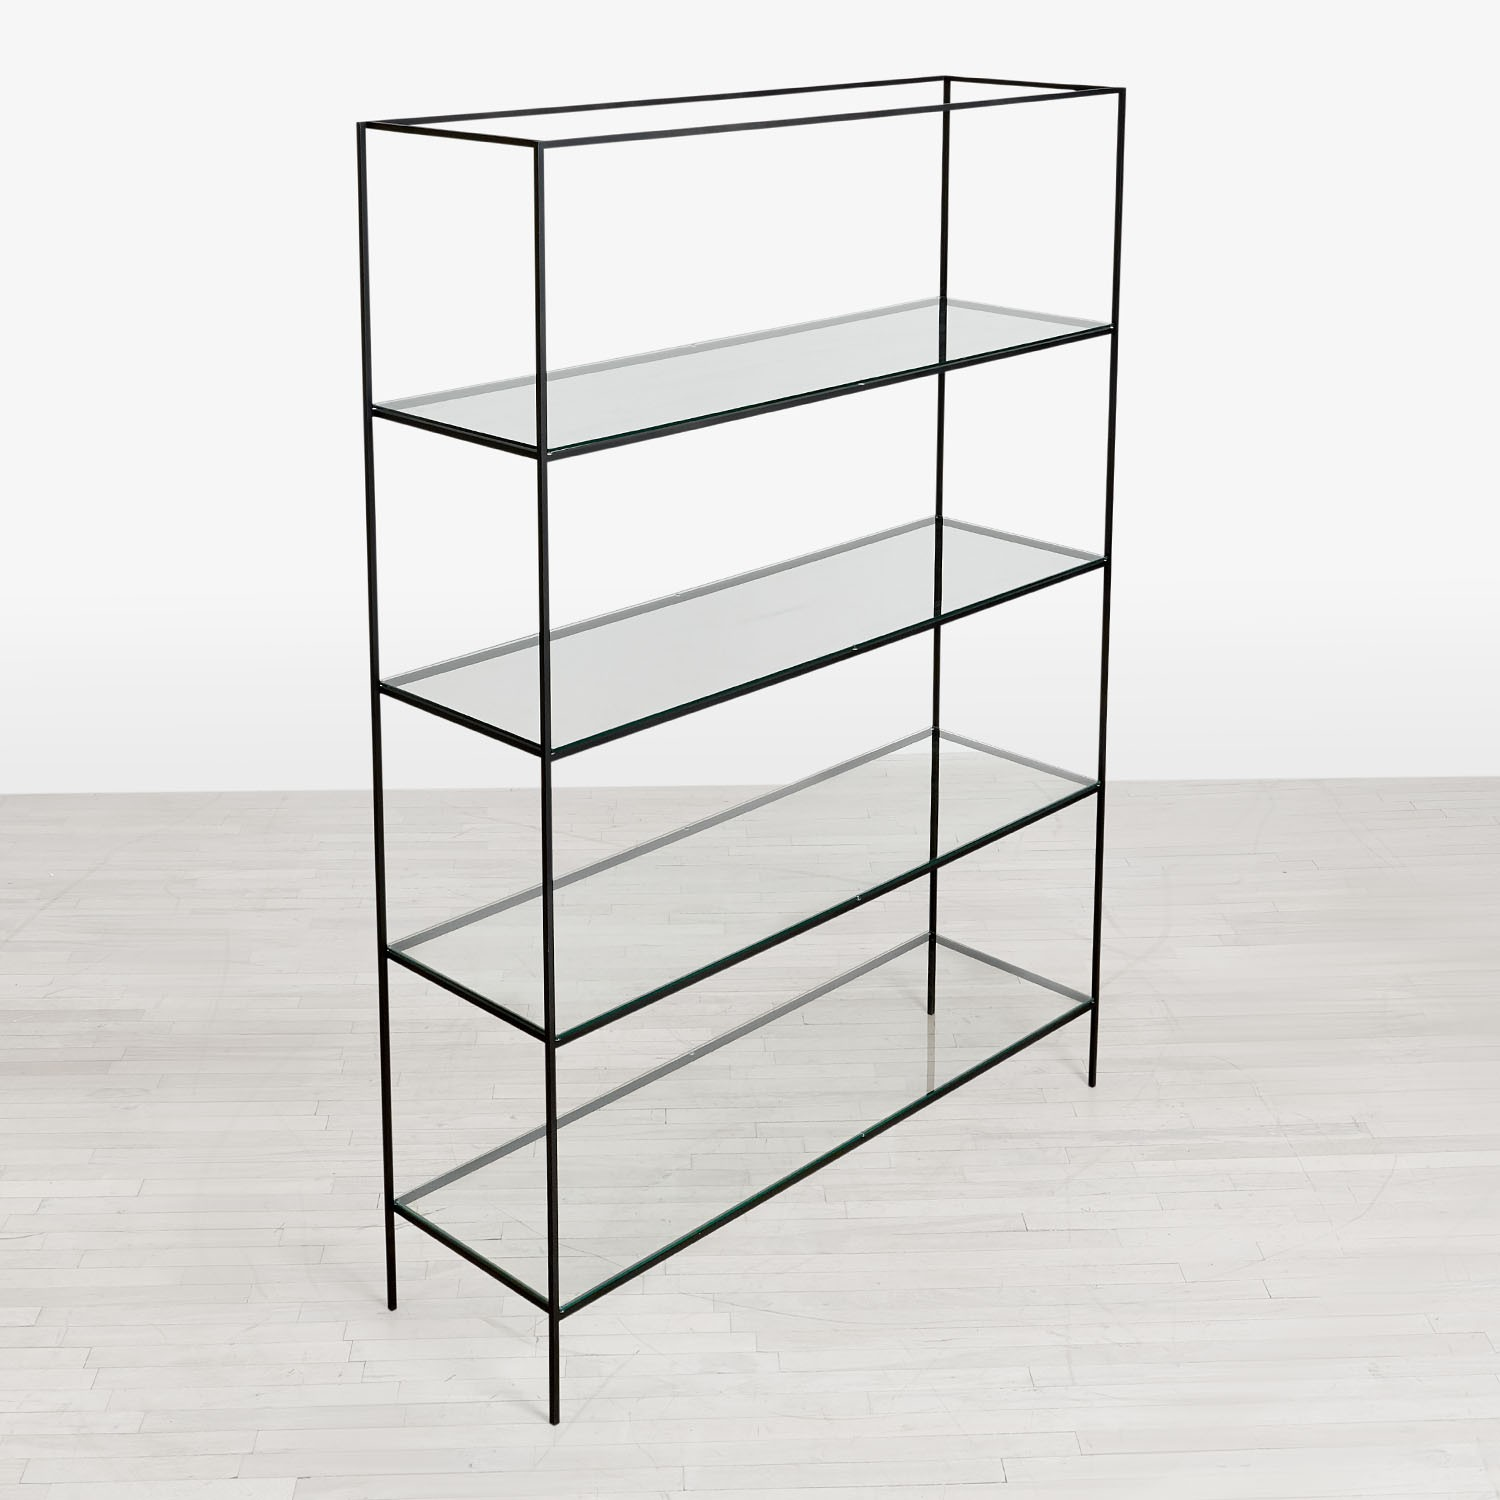 1492486-abcdna-synthesis-glass-5-tier-wide-shelving-b.jpg